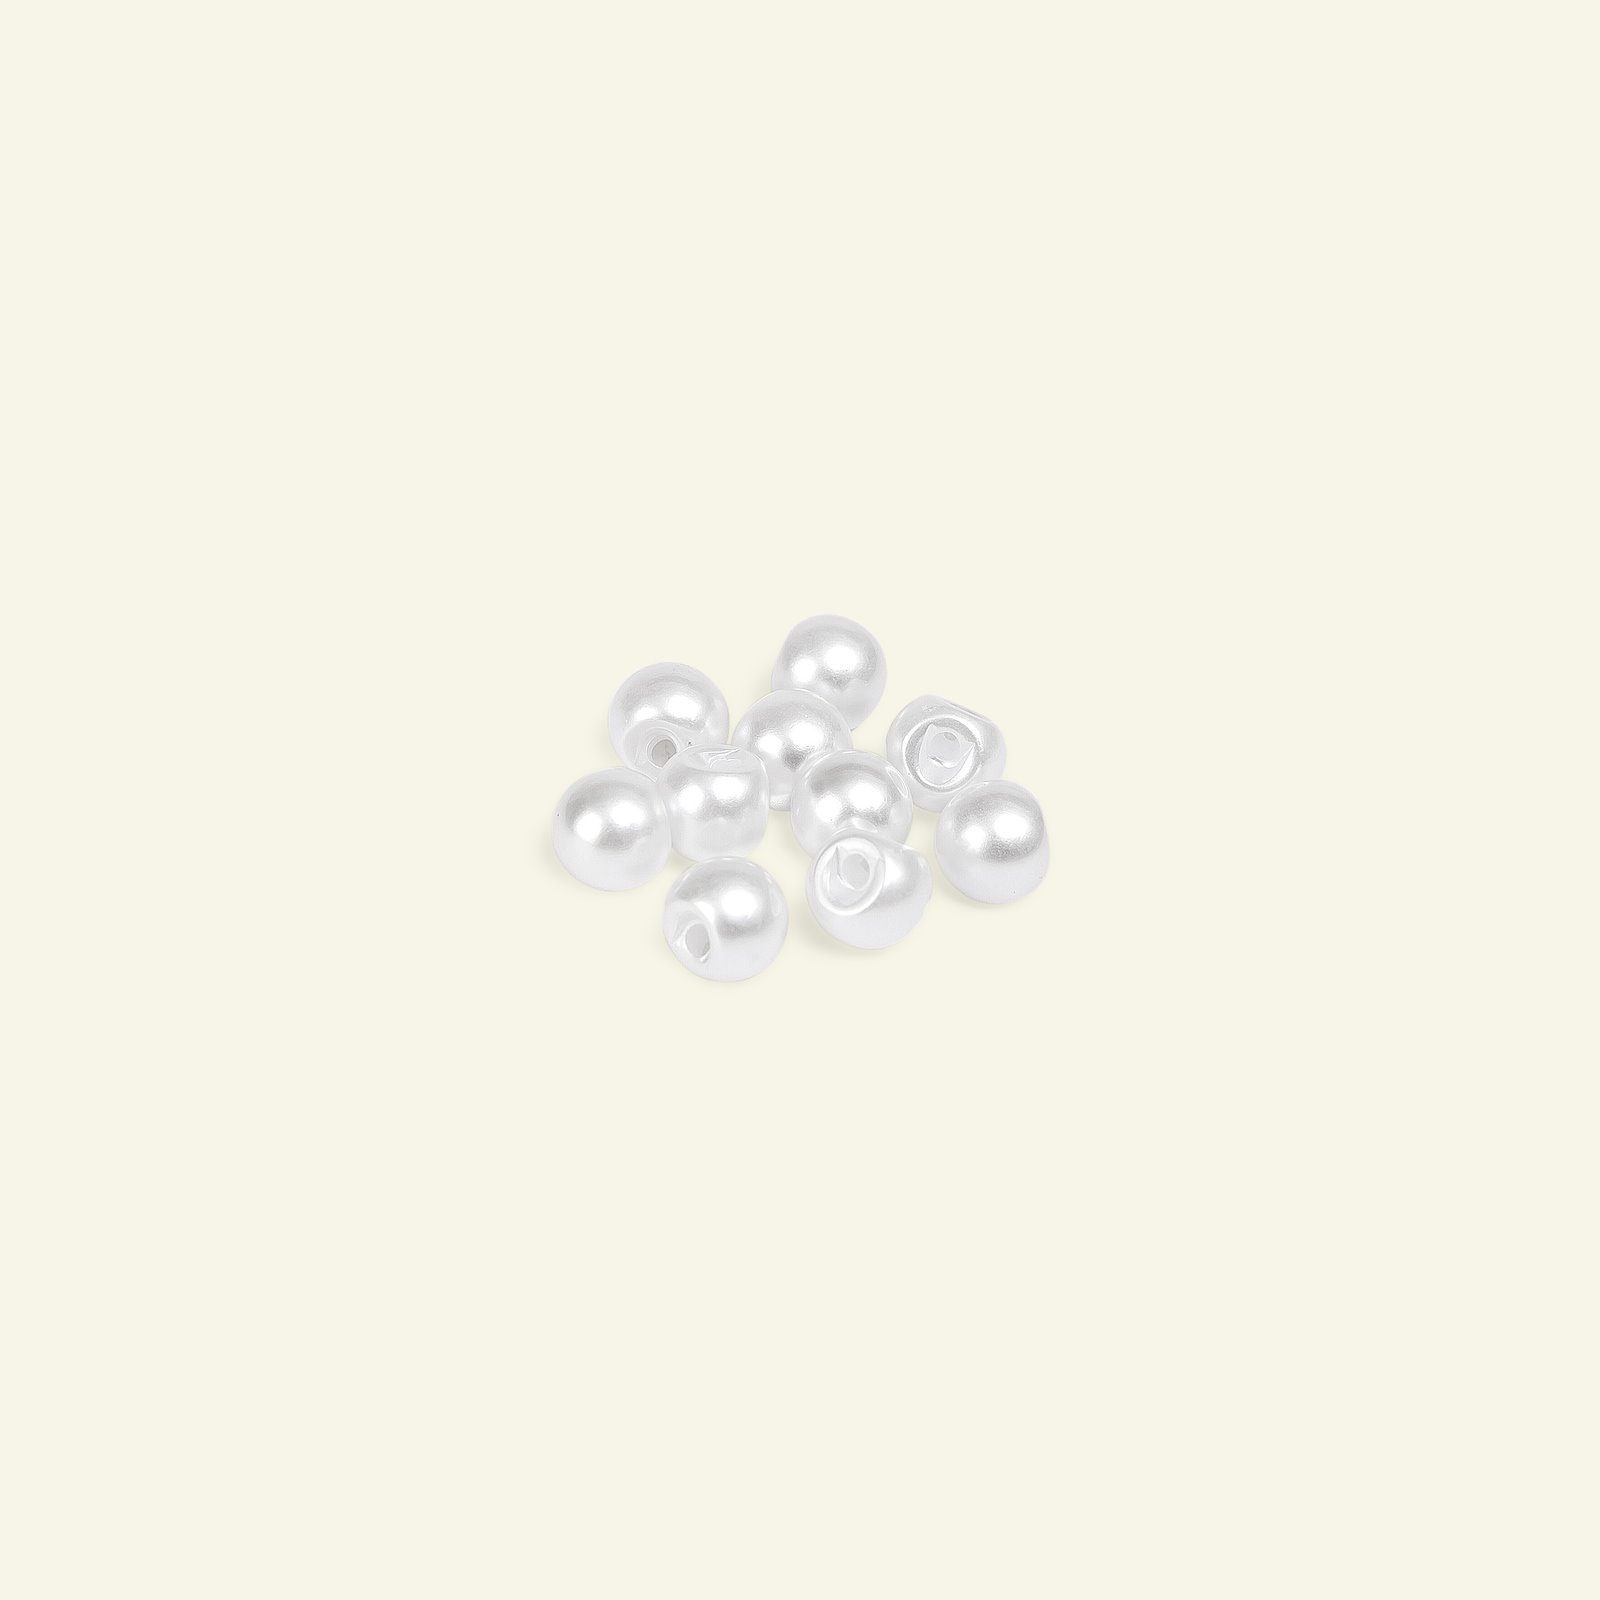 Shank button 7,6mm mother of pearl 10pcs 40551_pack